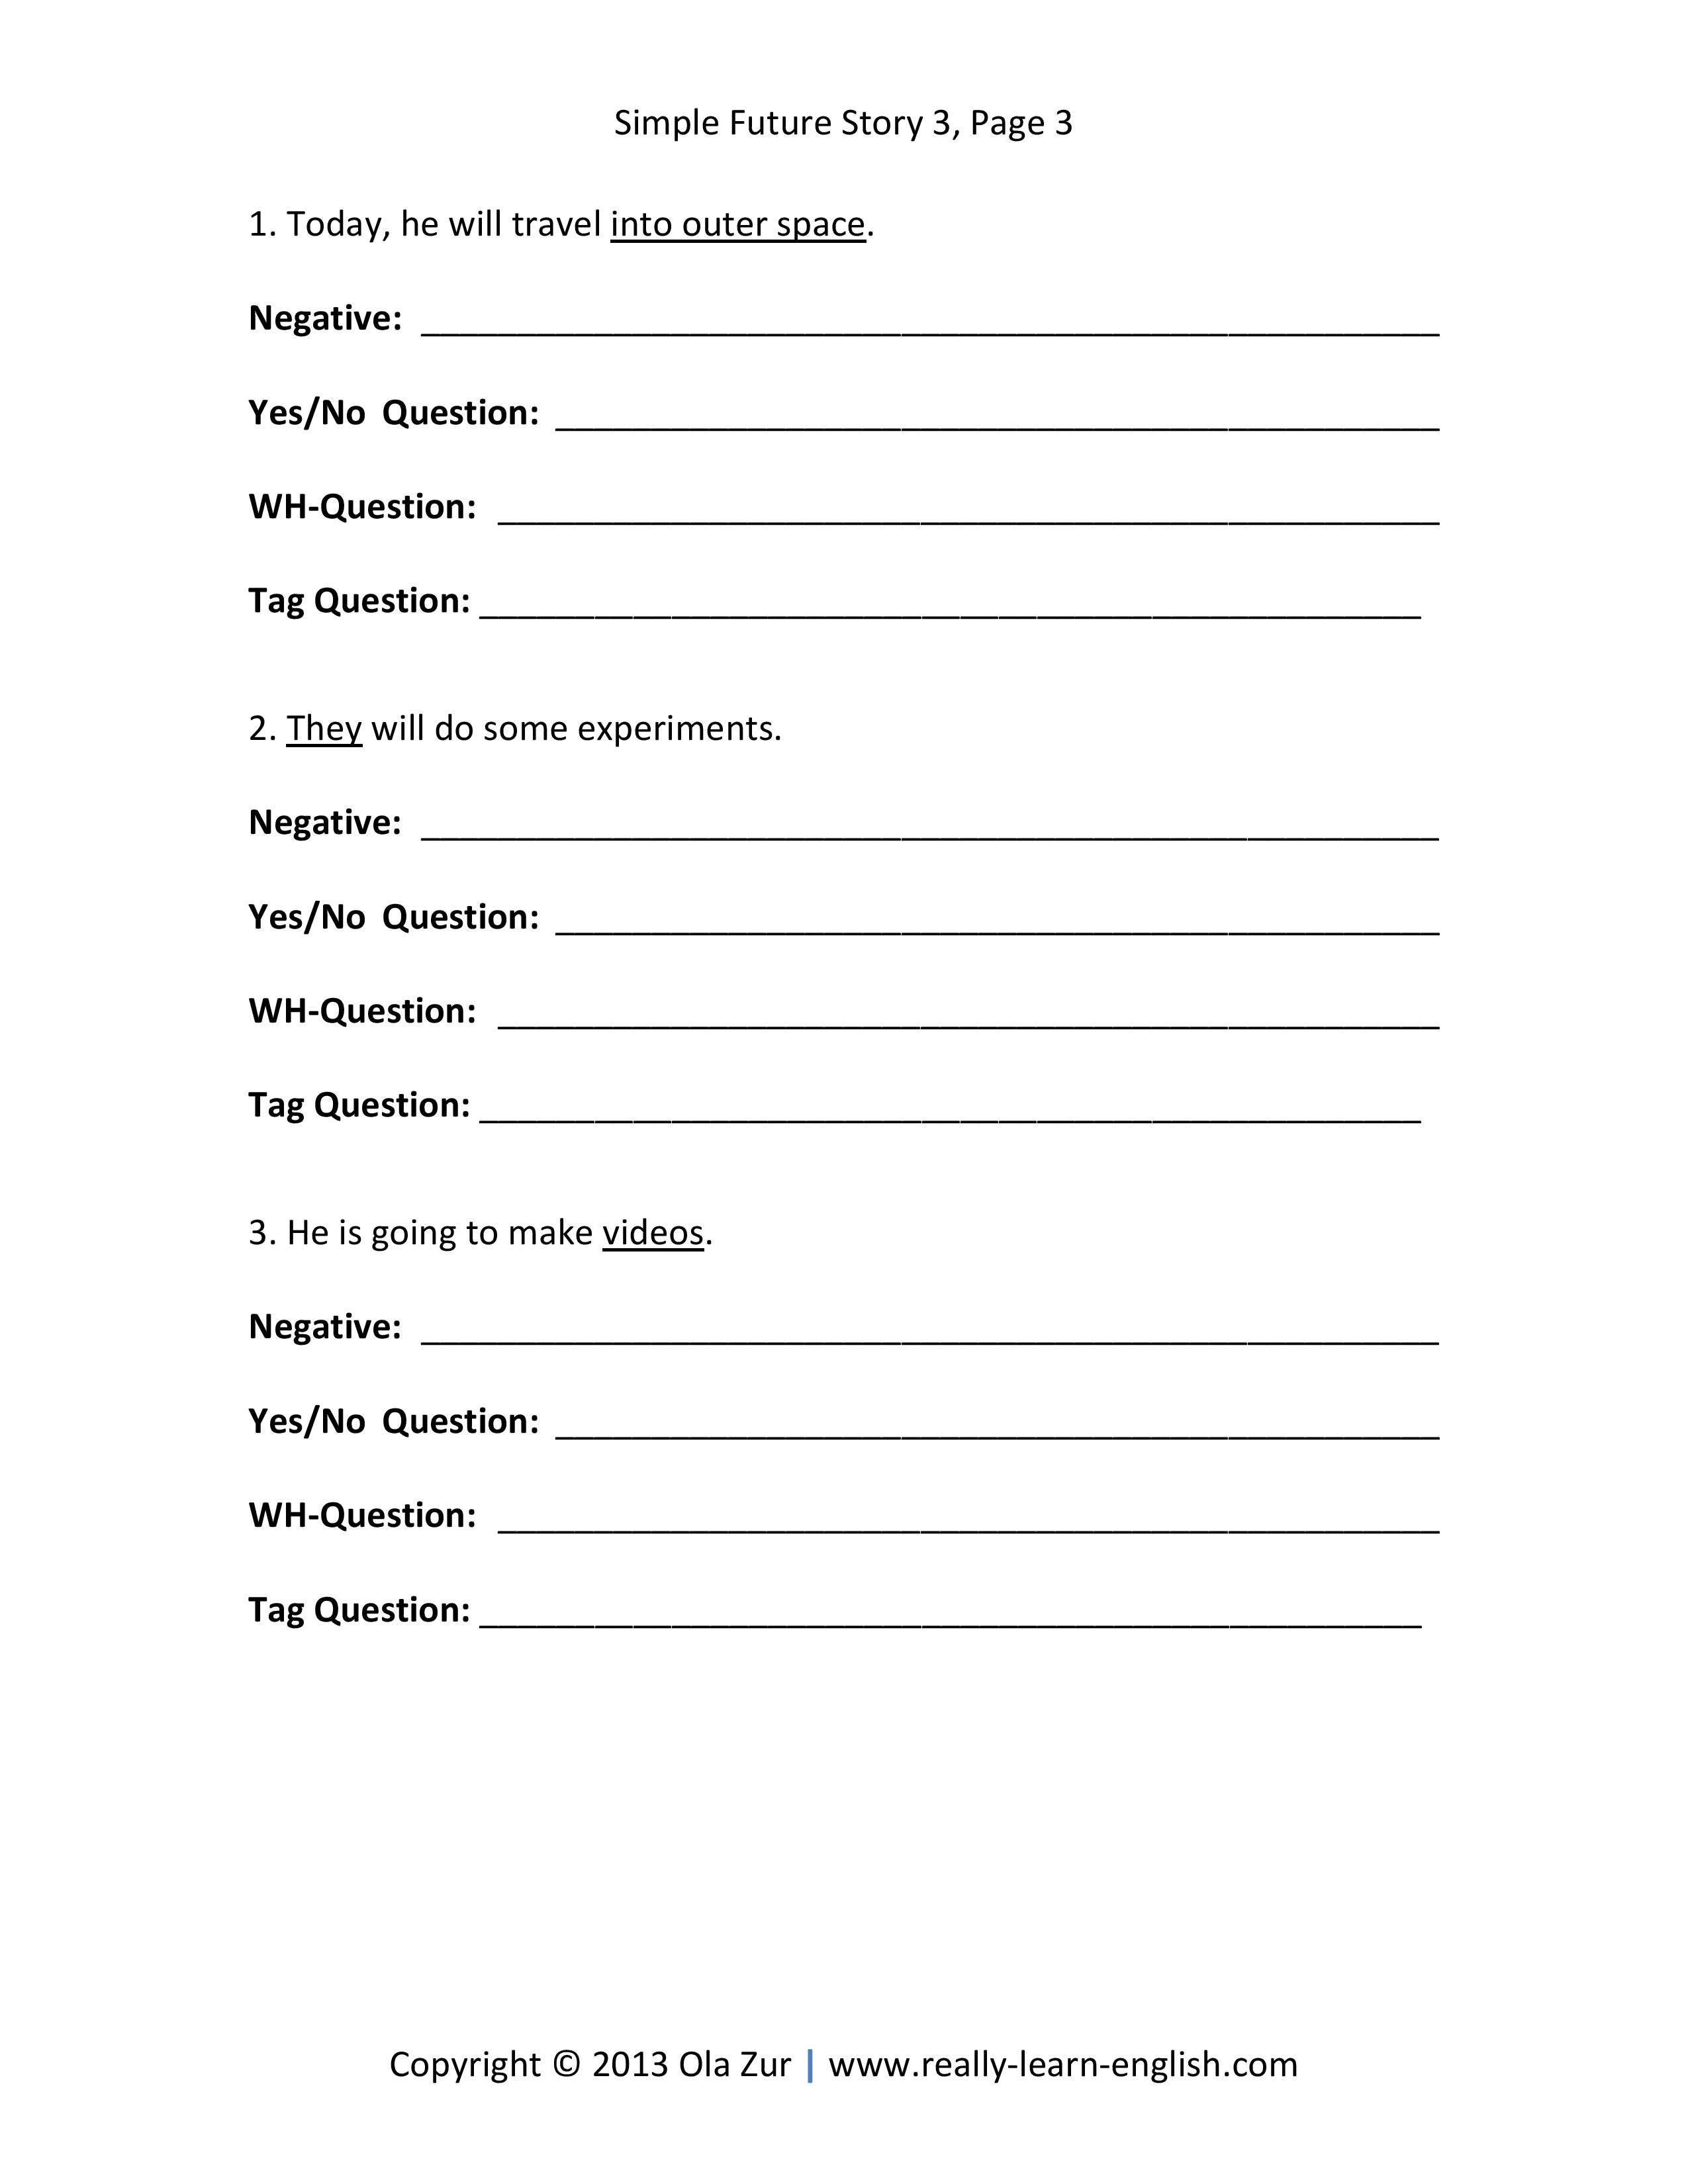 English Grammar Tenses Stories Exercises And Answers English